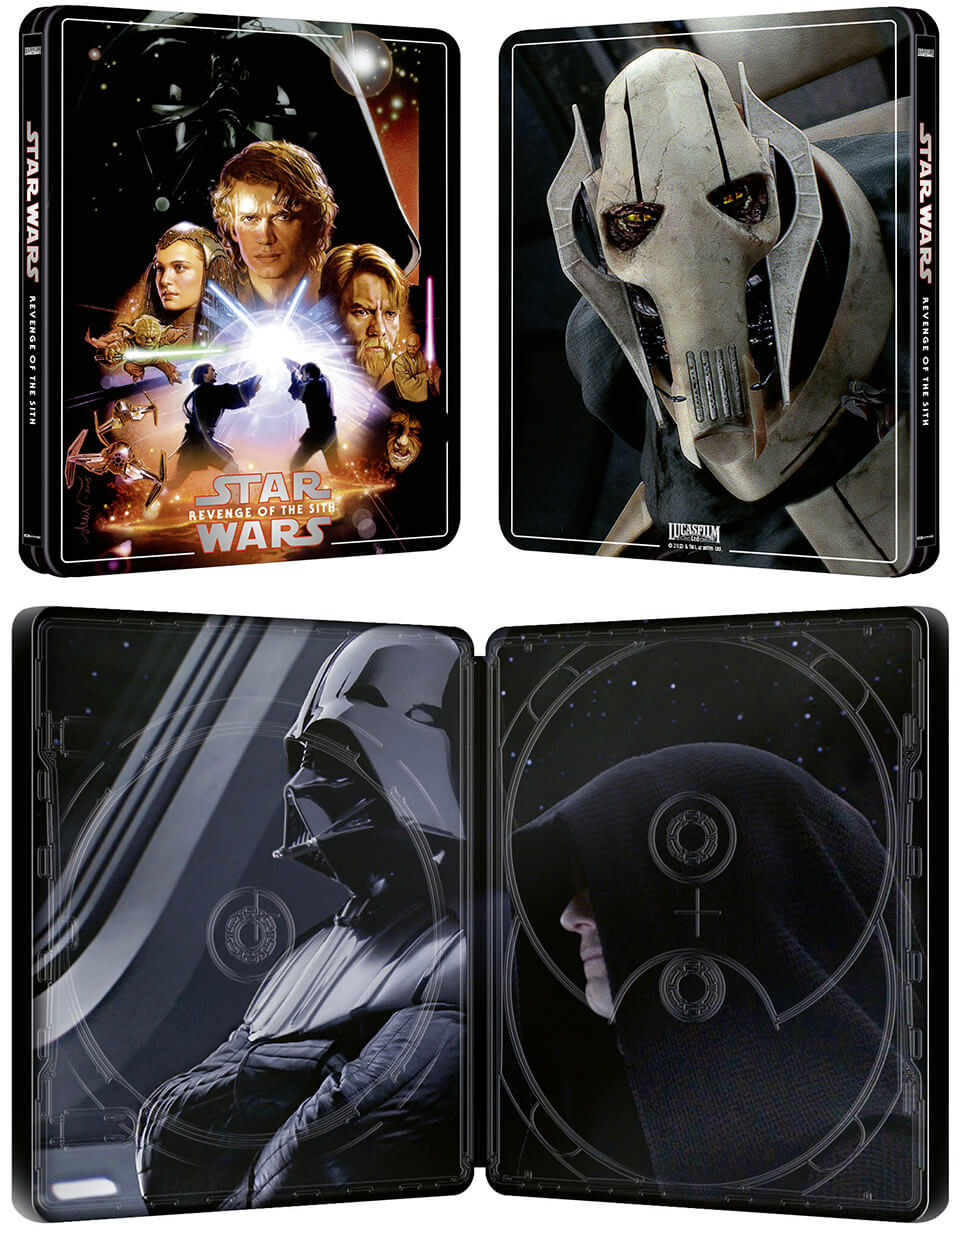 Pre Order The Magnificent Star Wars Steelbook Episode Iii Revenge Of The Sith